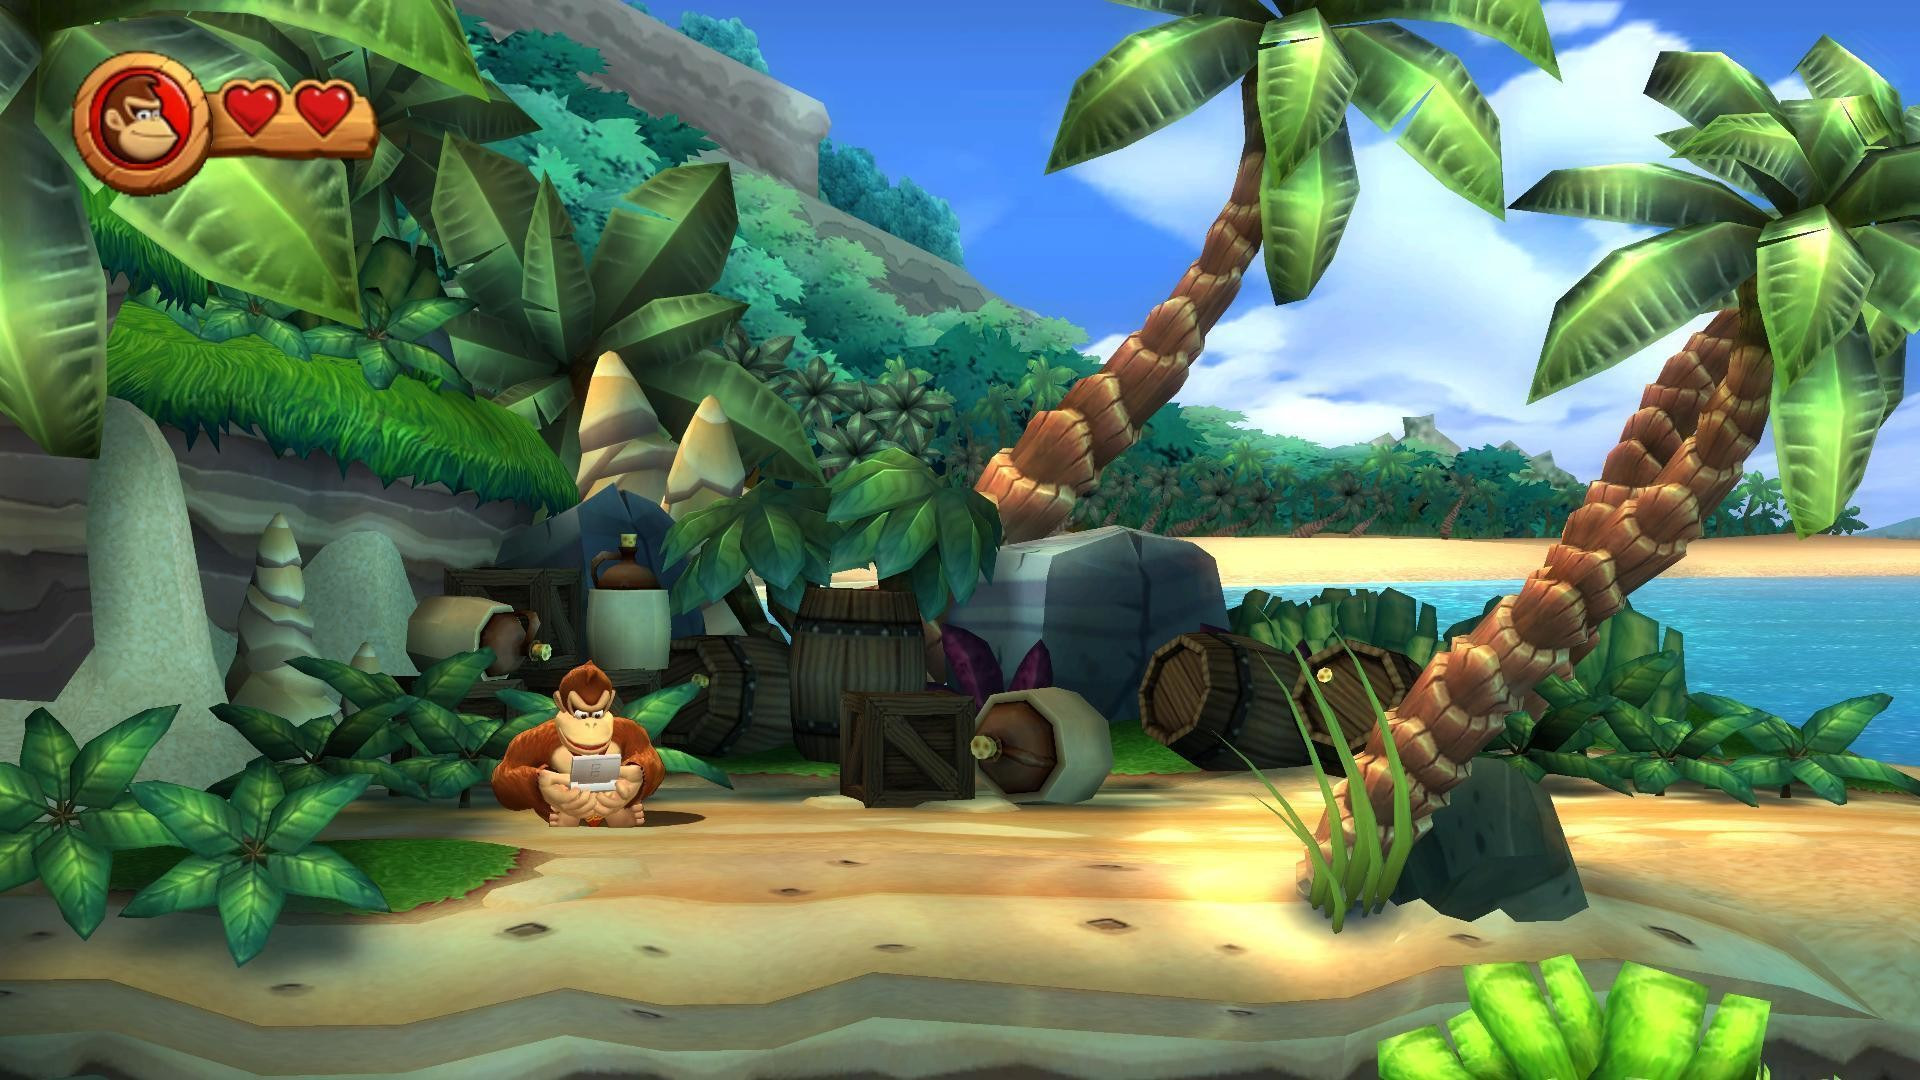 Res: 1920x1080, Images For > Donkey Kong Country Snes Wallpaper